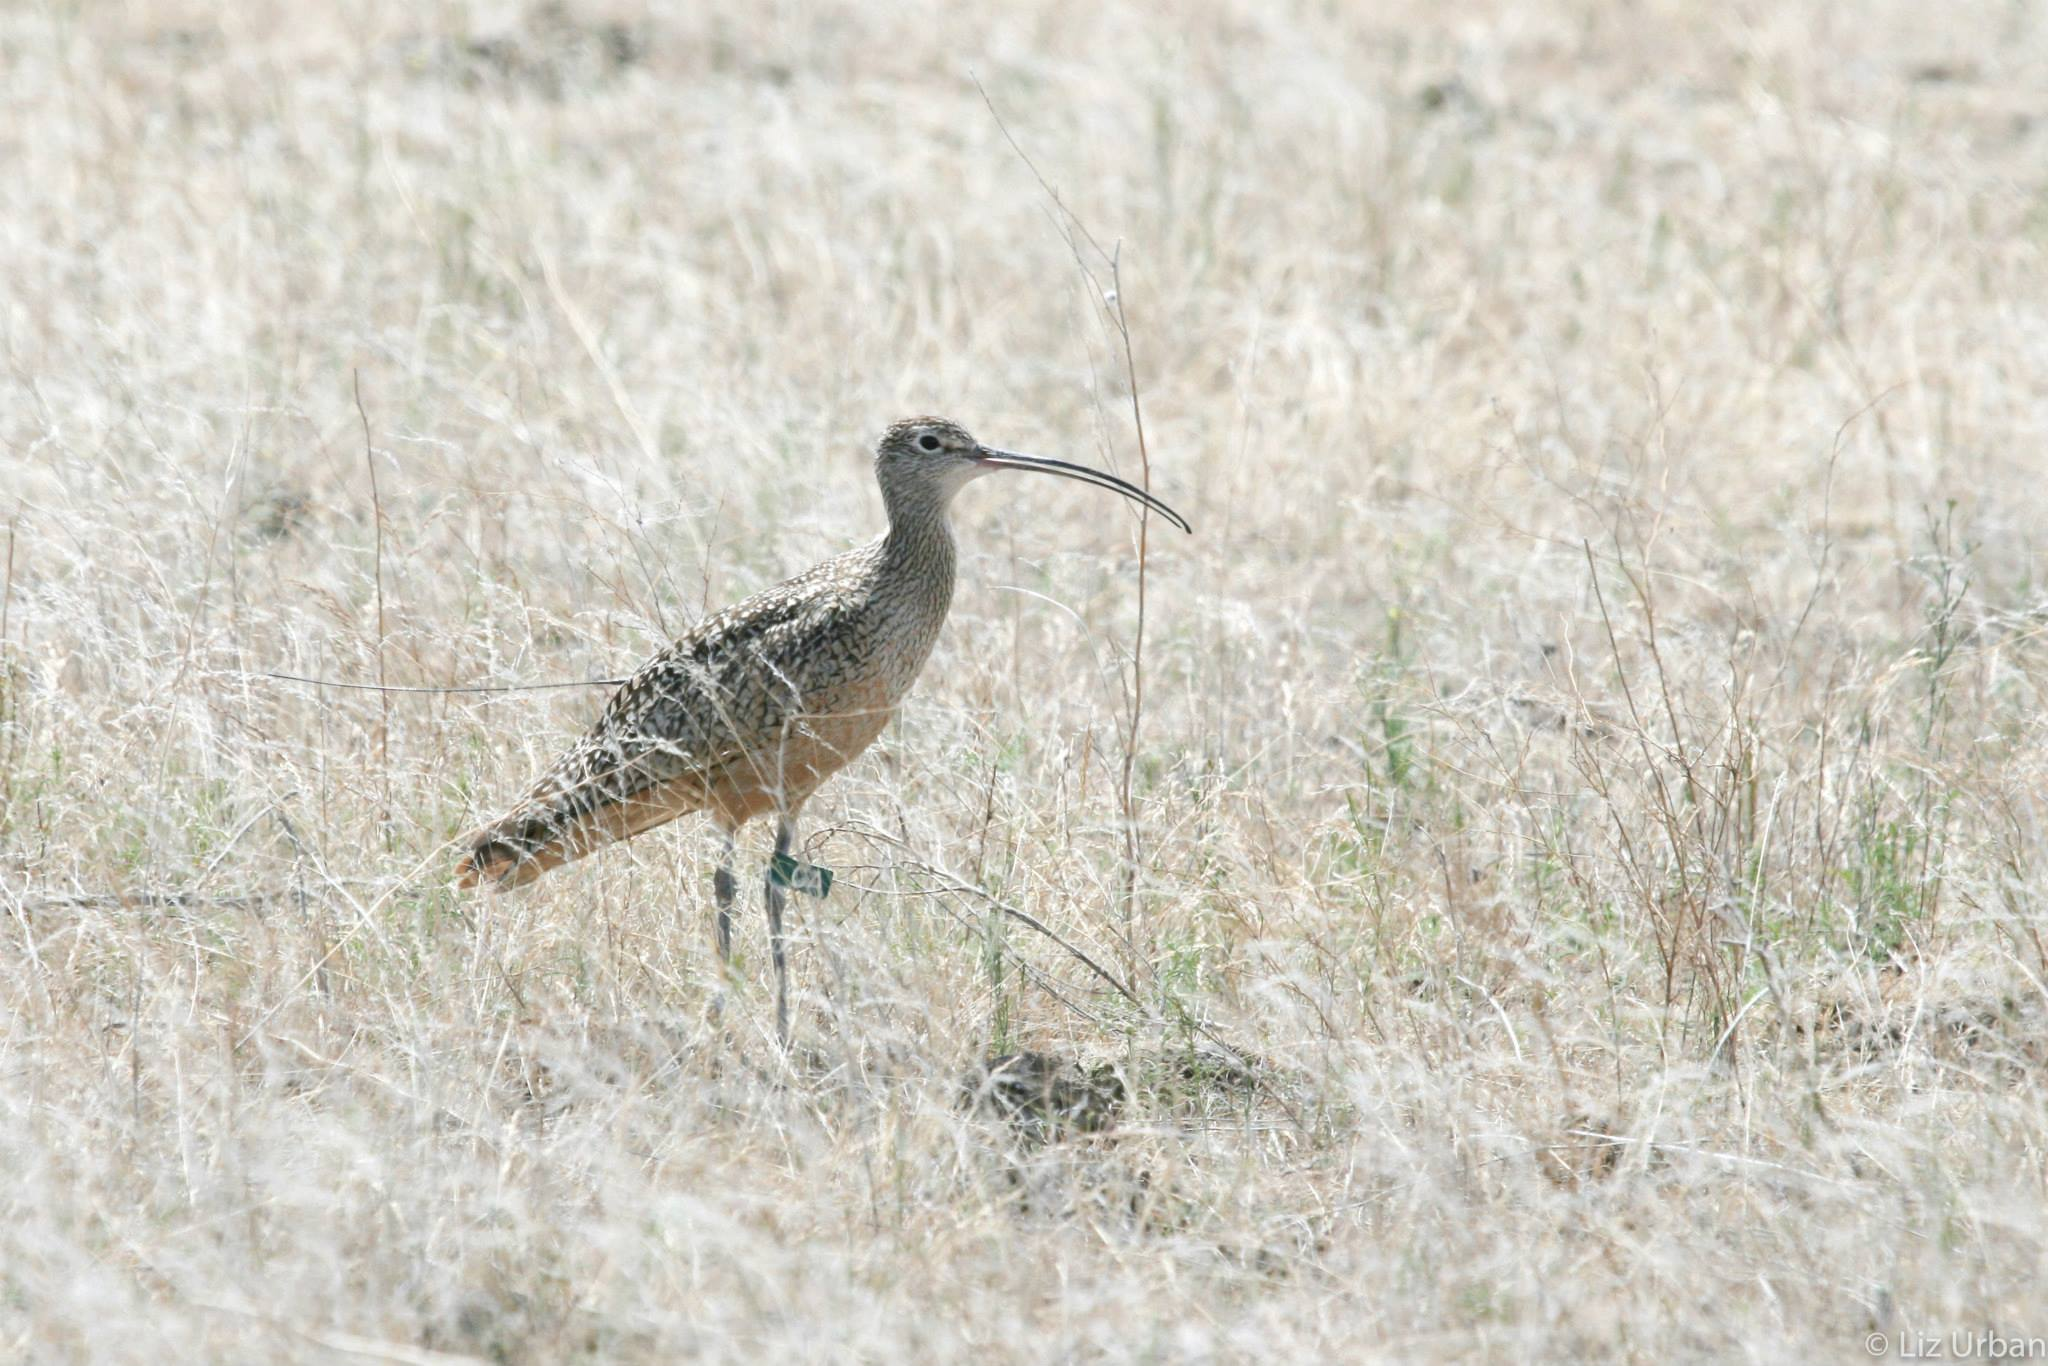 carl the curlew standing in a brown field of cheat grass